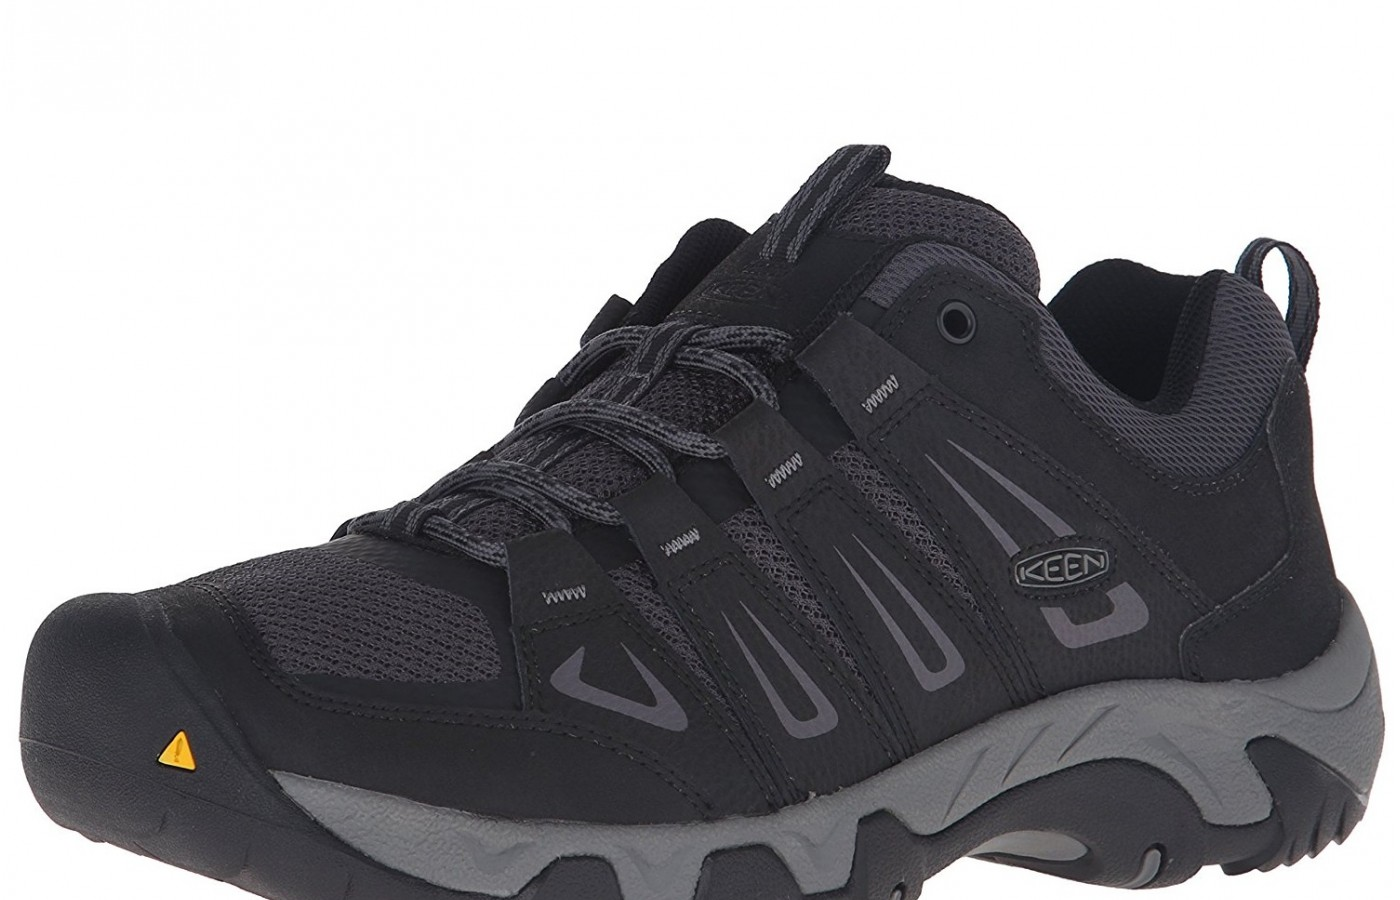 The Keen Oakridge offers leather and mesh uppers for breathability.